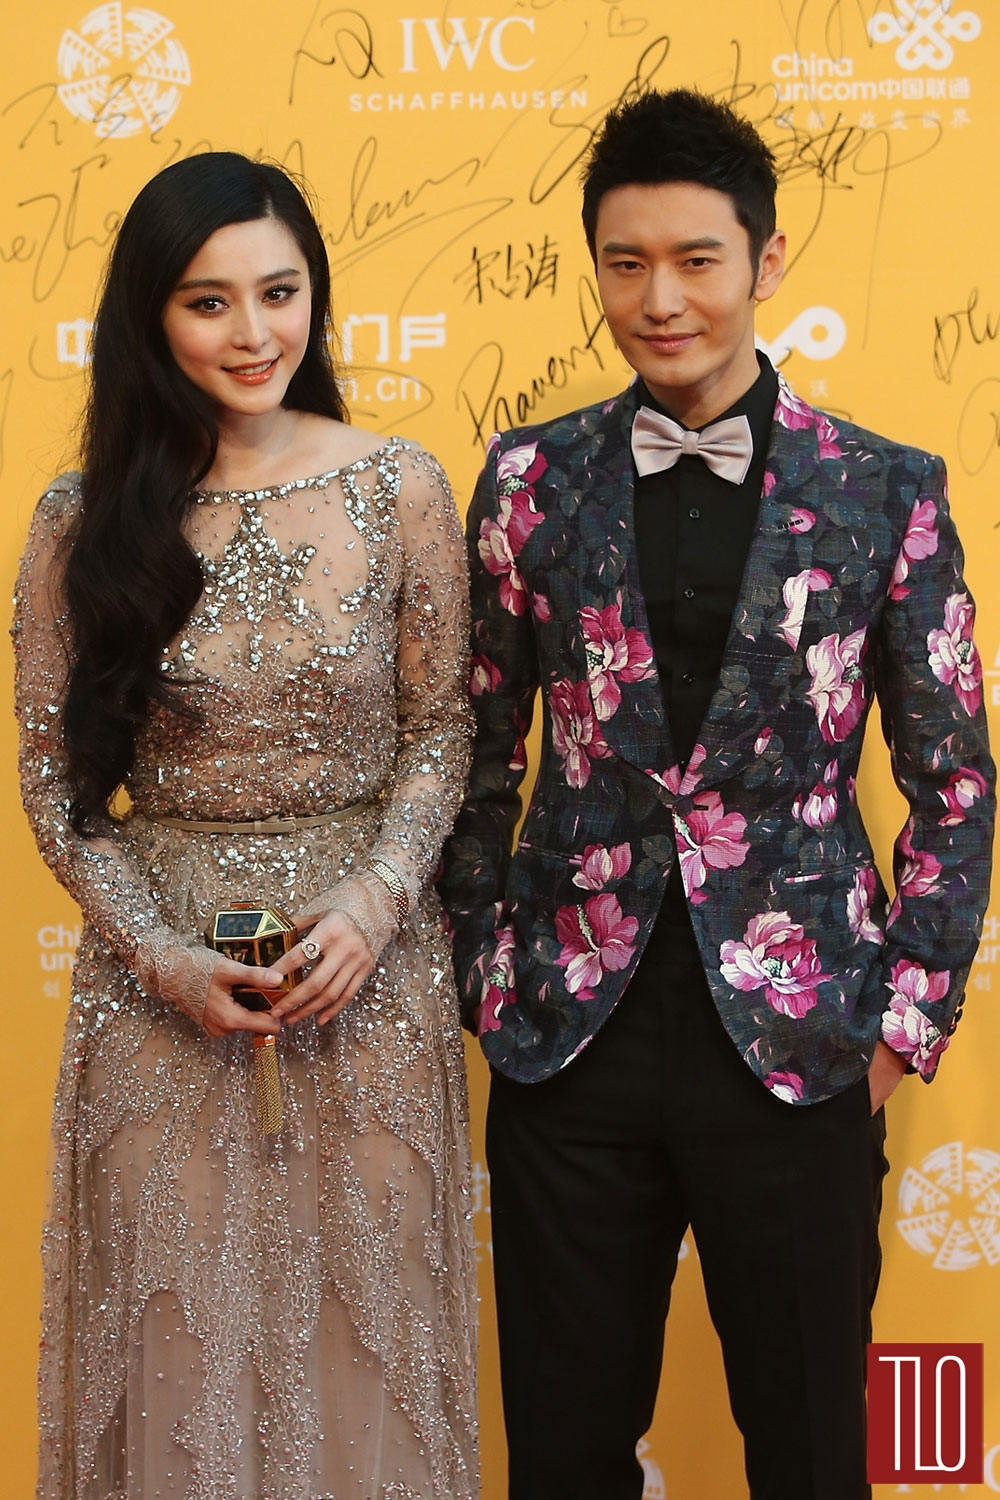 Fan-Bingbing-Huang-Xiaoming-Beijing-International-Film-Festival-2014-Elie-Saab-Couture-Tom-Lorenzo-Site-TLO (1)